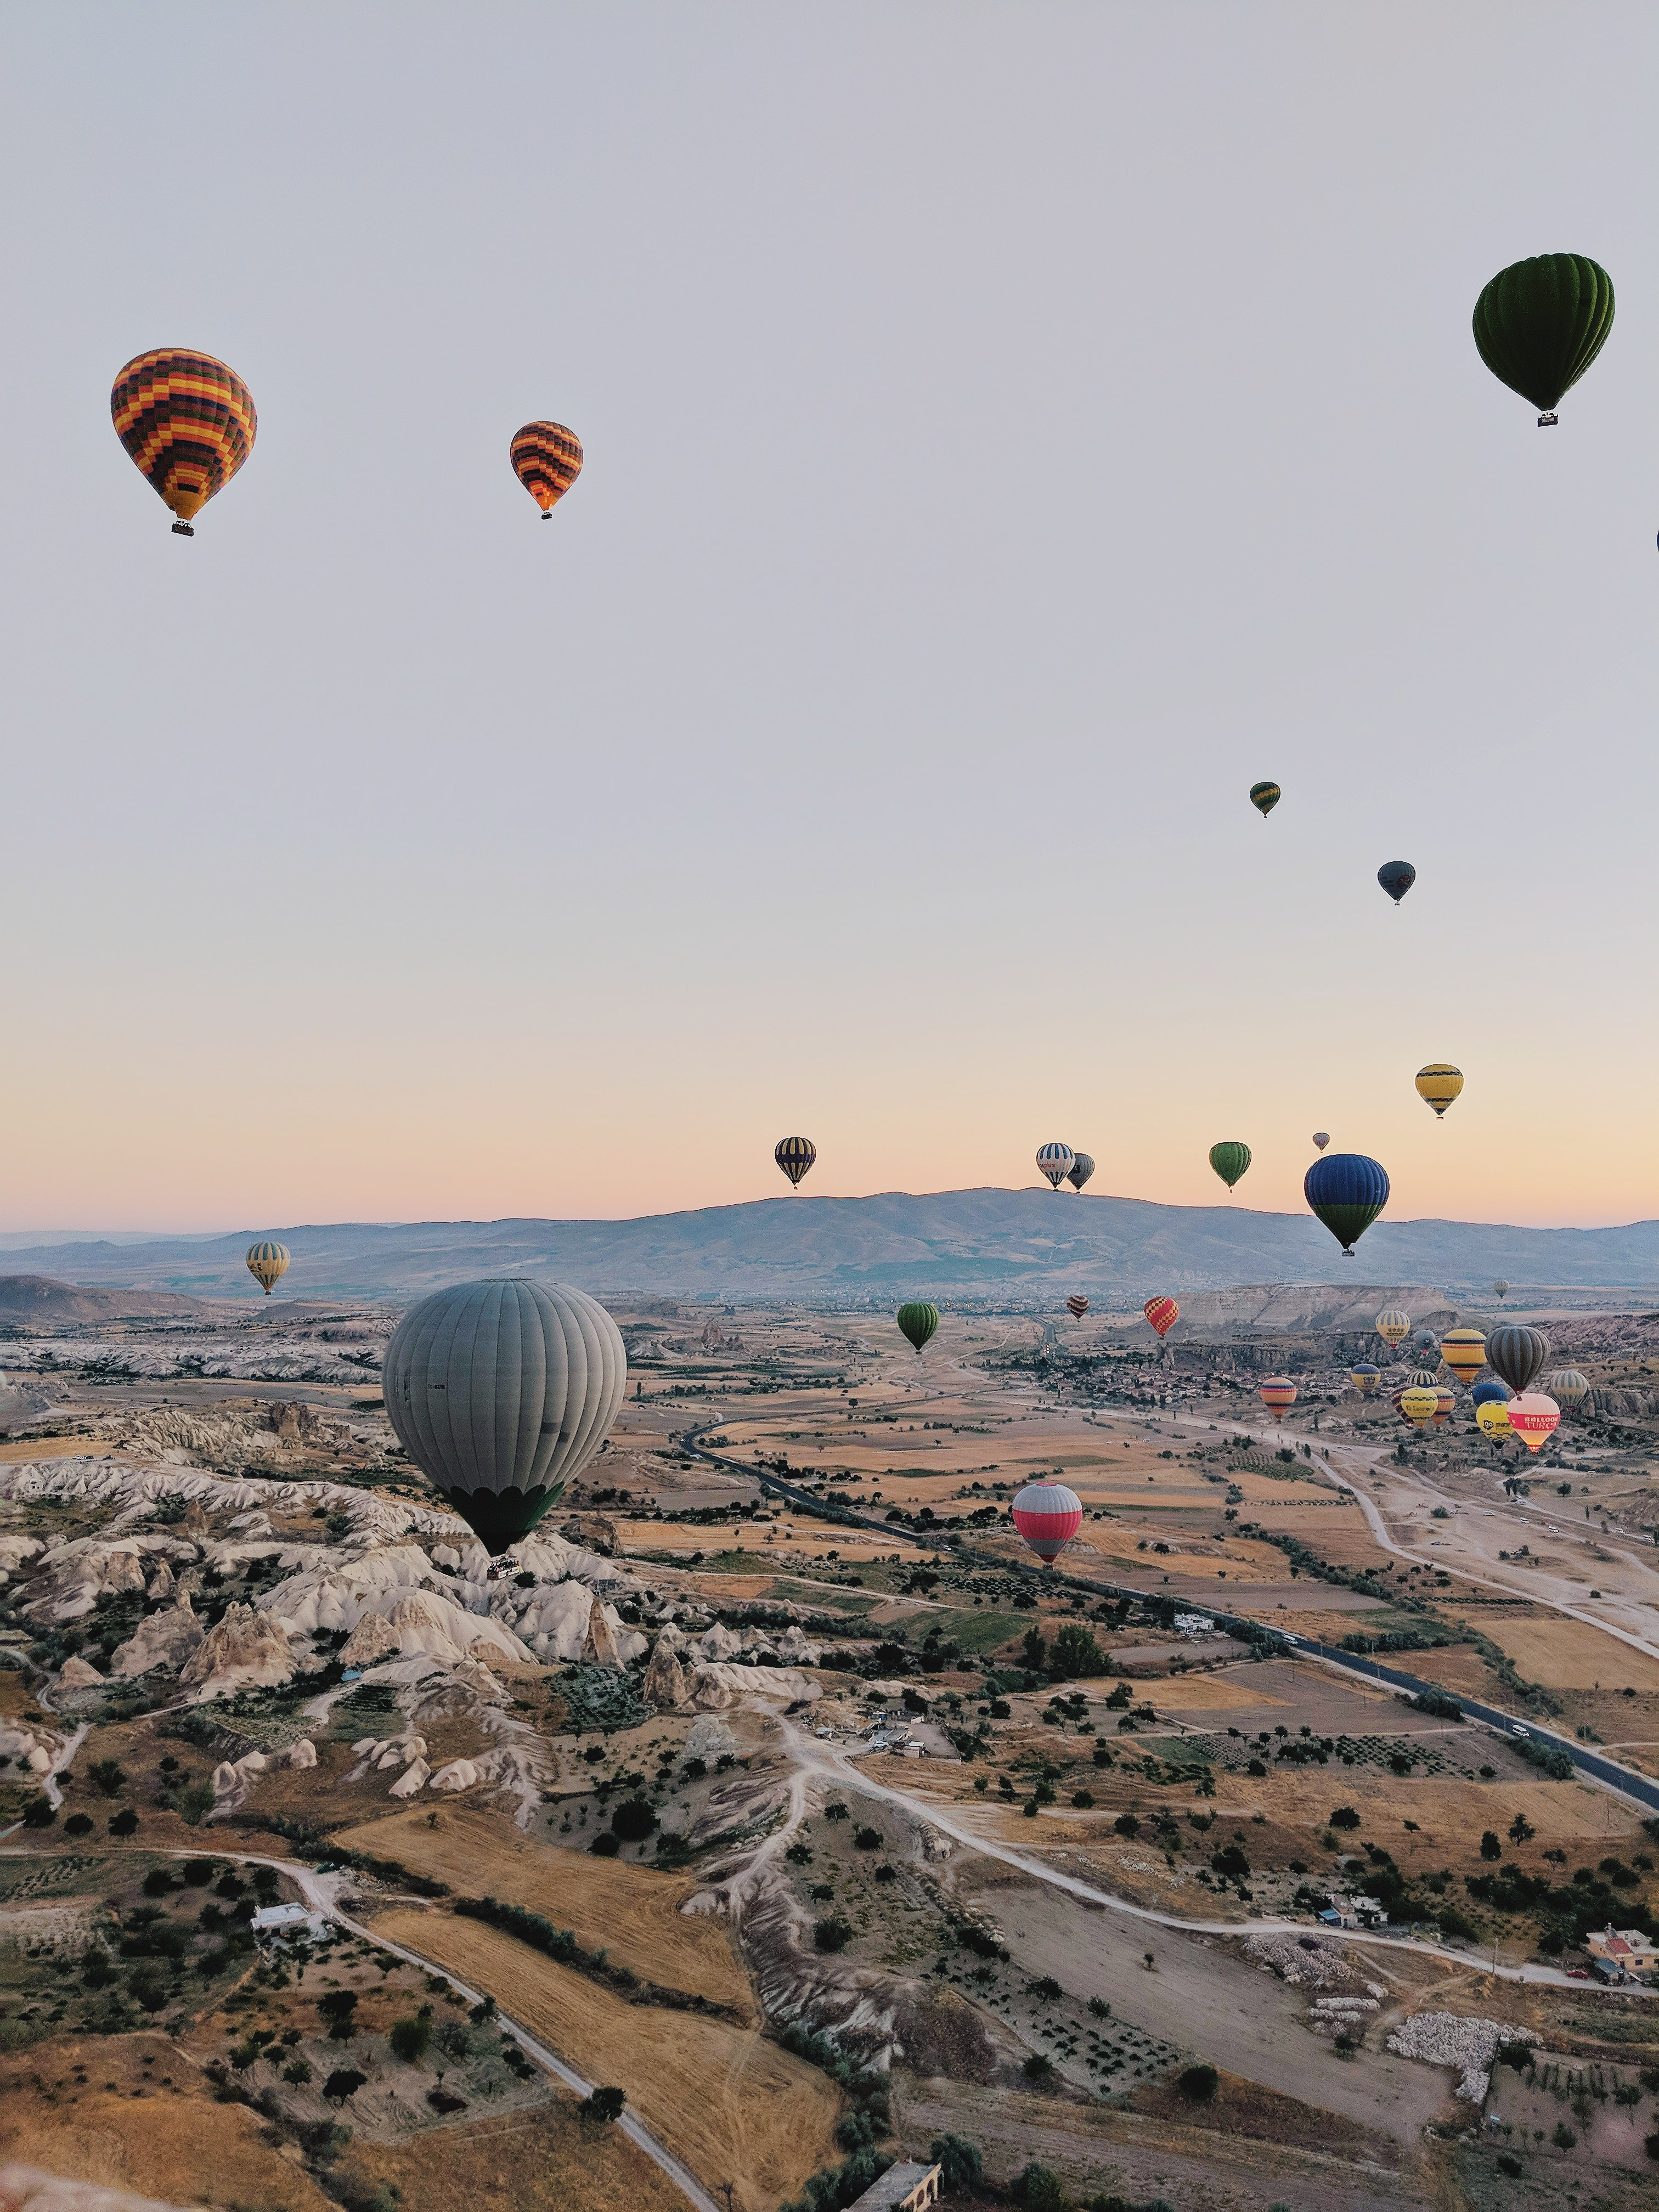 hot air balloons floating on air